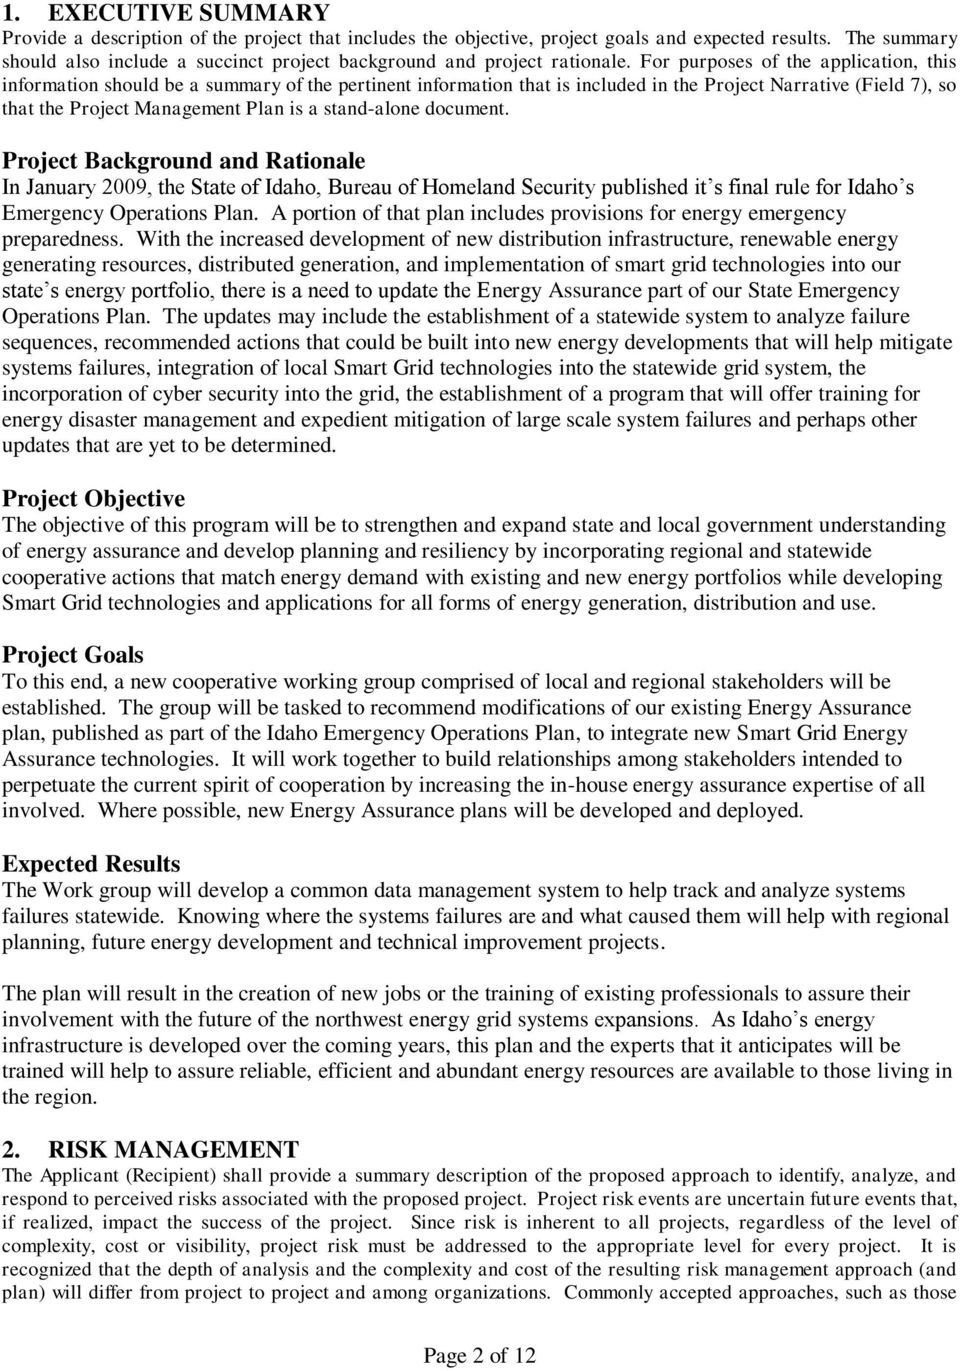 For purposes of the application, this information should be a summary of the pertinent information that is included in the Project Narrative (Field 7), so that the Project Management Plan is a